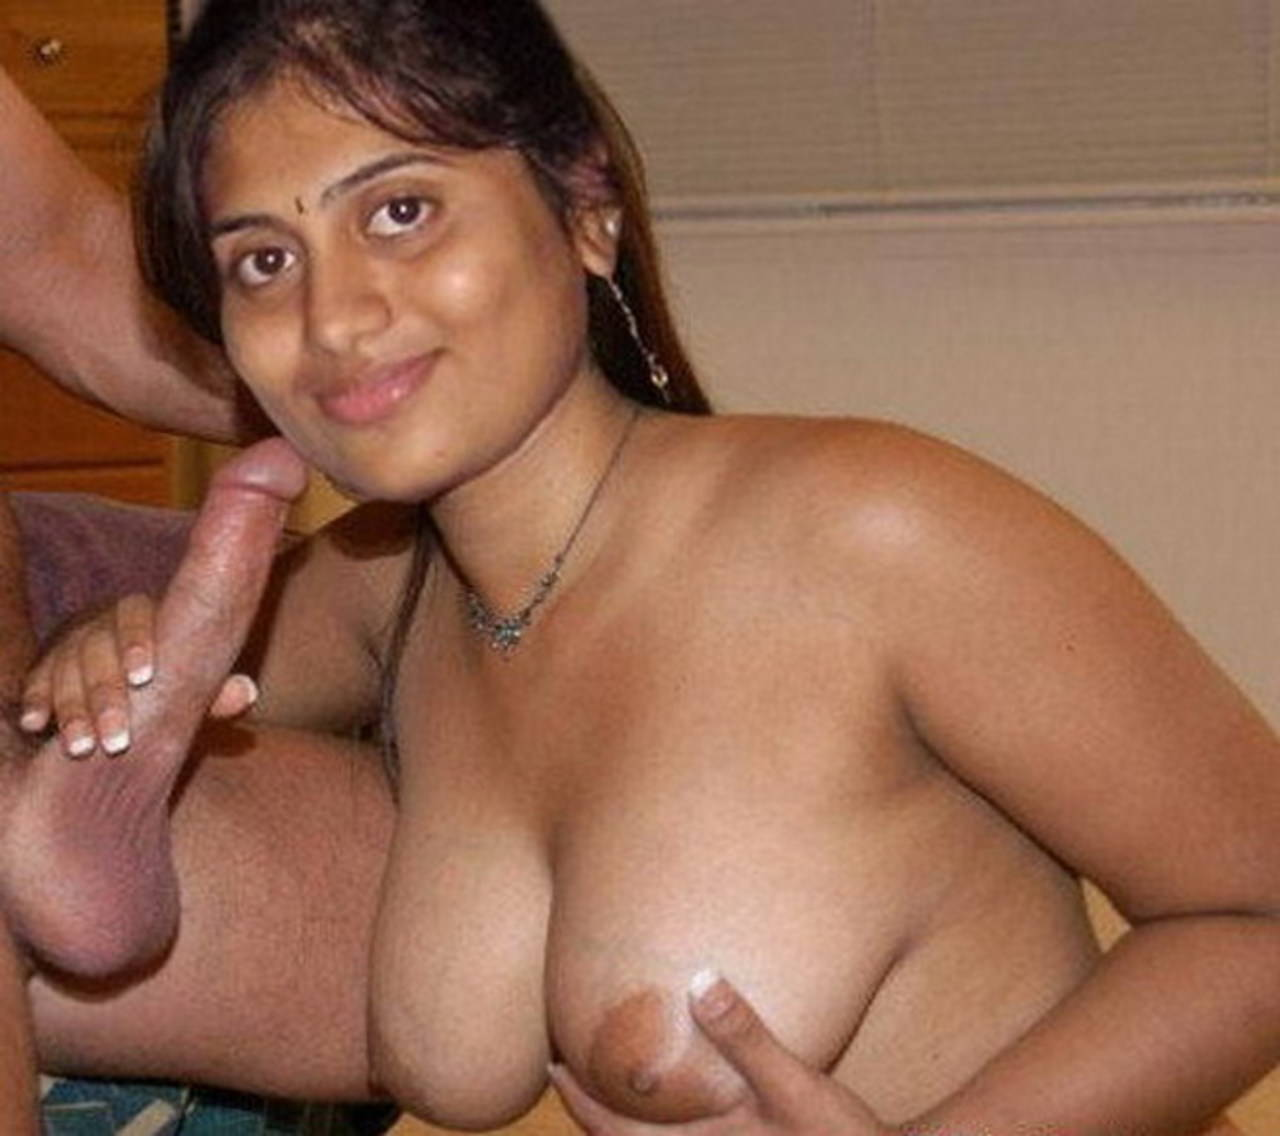 Indian woman naked porn pictures pornos clips